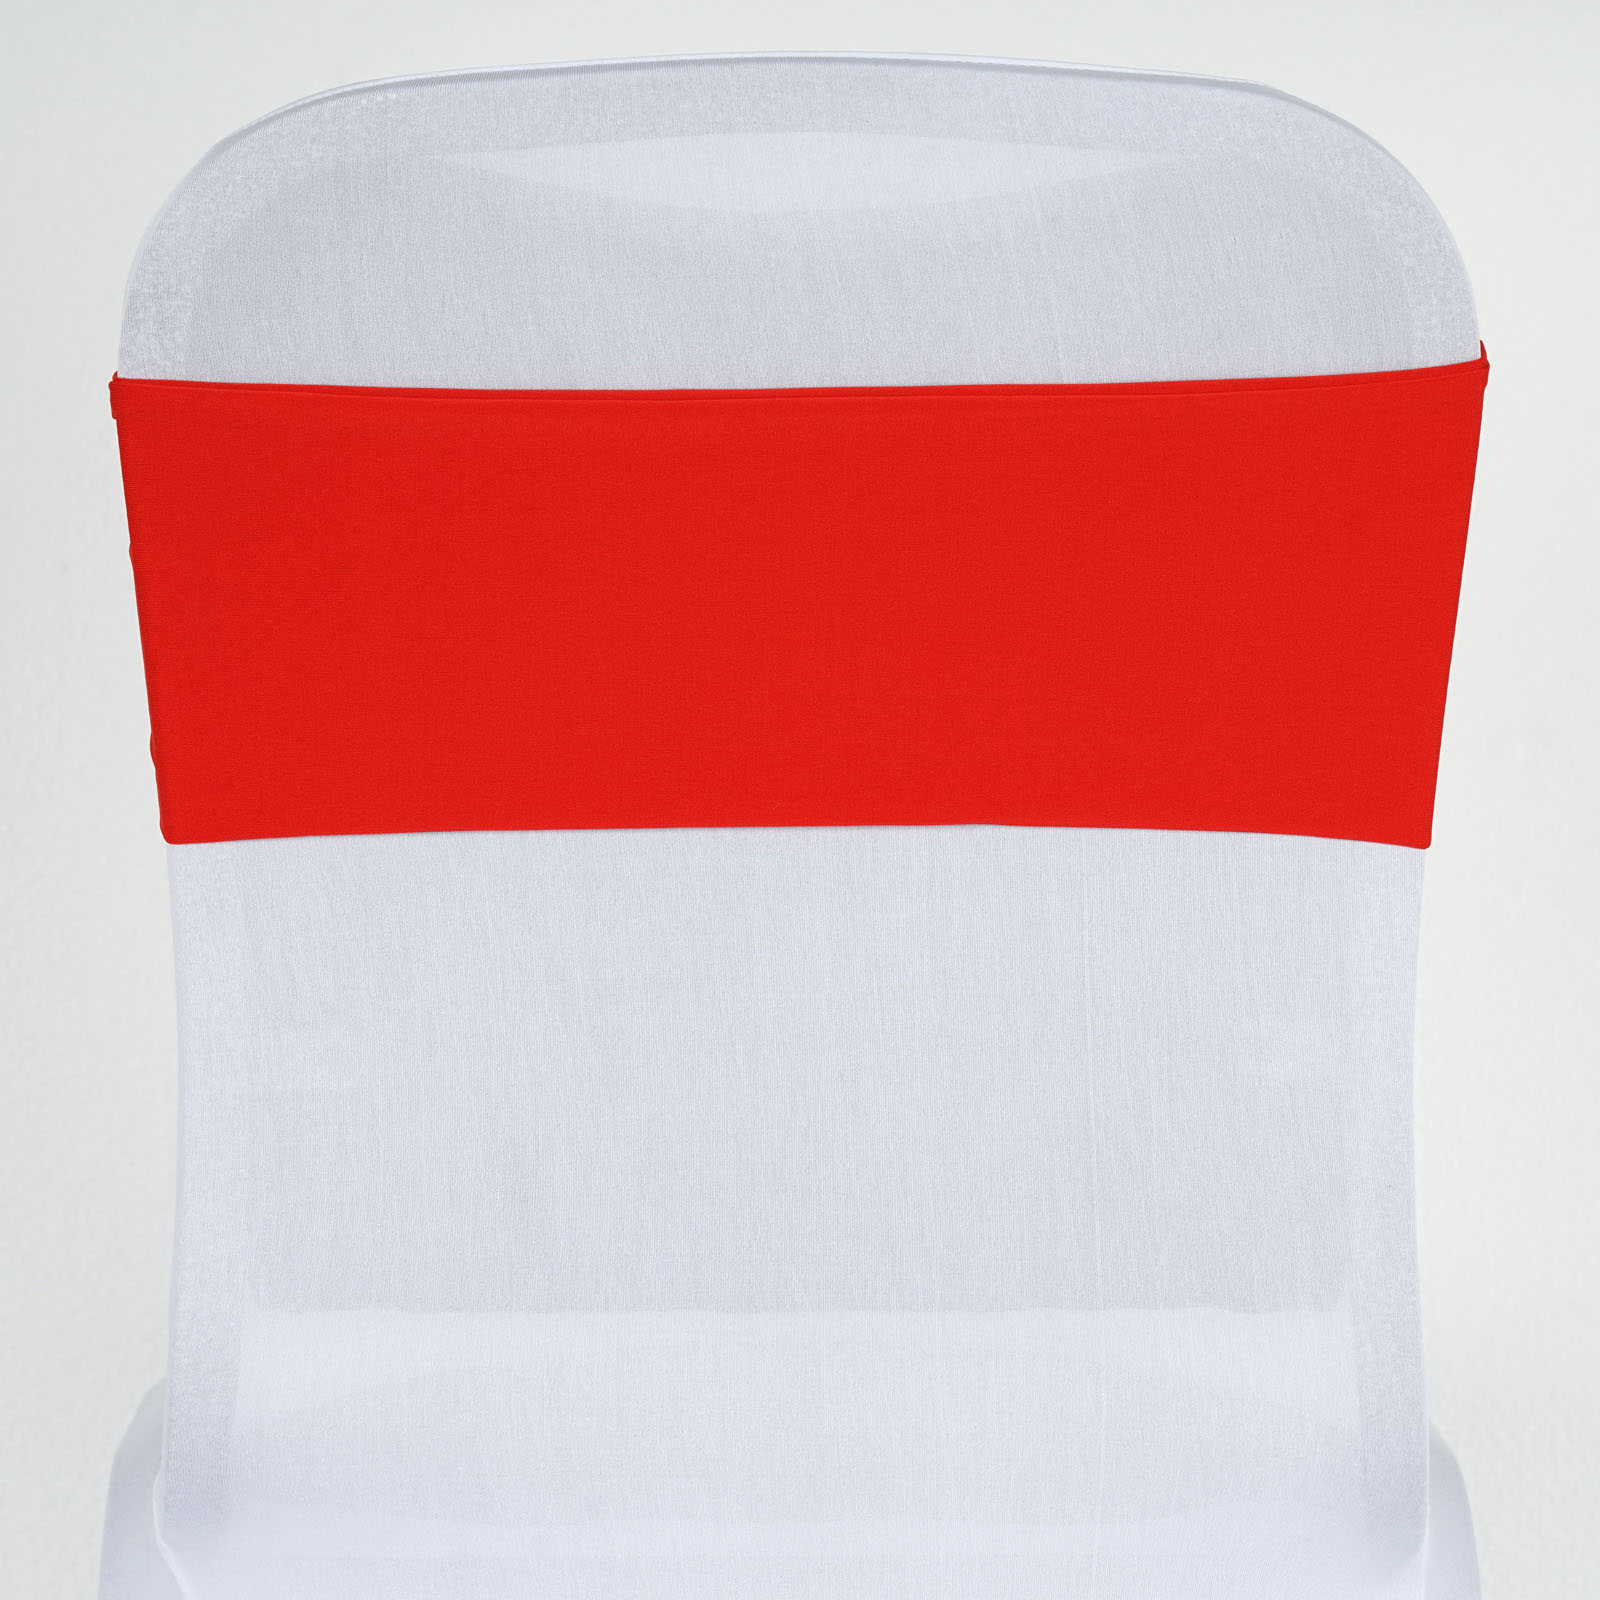 Spandex Chair Sashes 150 Wholesale Spandex Stretchable Chair Sashes Ties Wraps